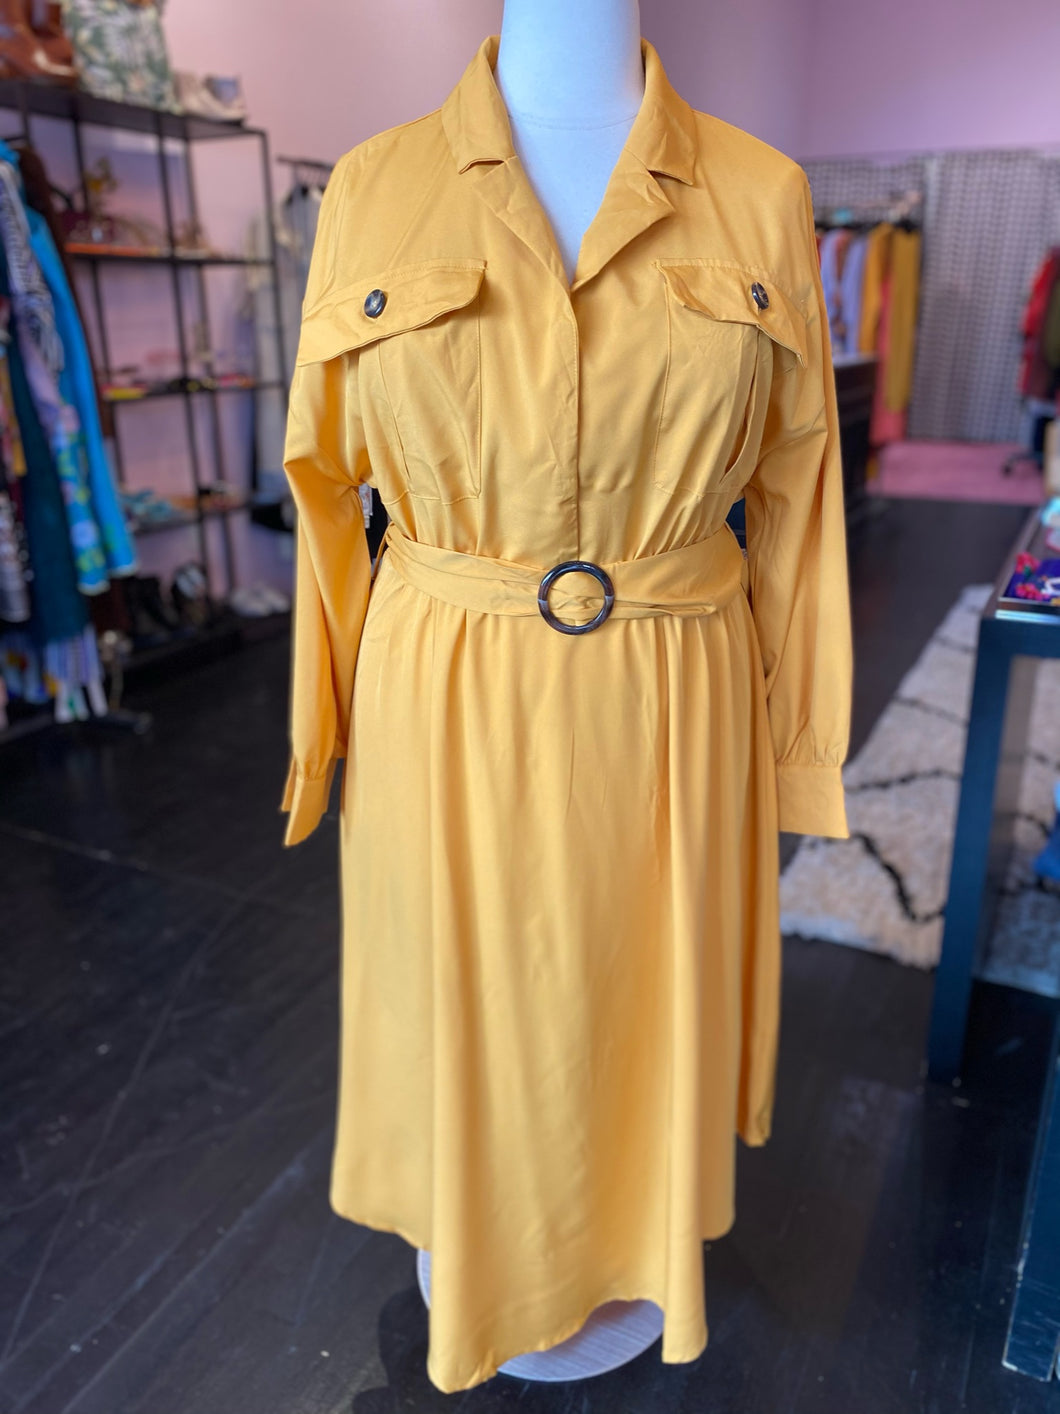 Mustard Yellow Trench-Style Dress with Tortoiseshell Details by SHEIN, Multiple Sizes!